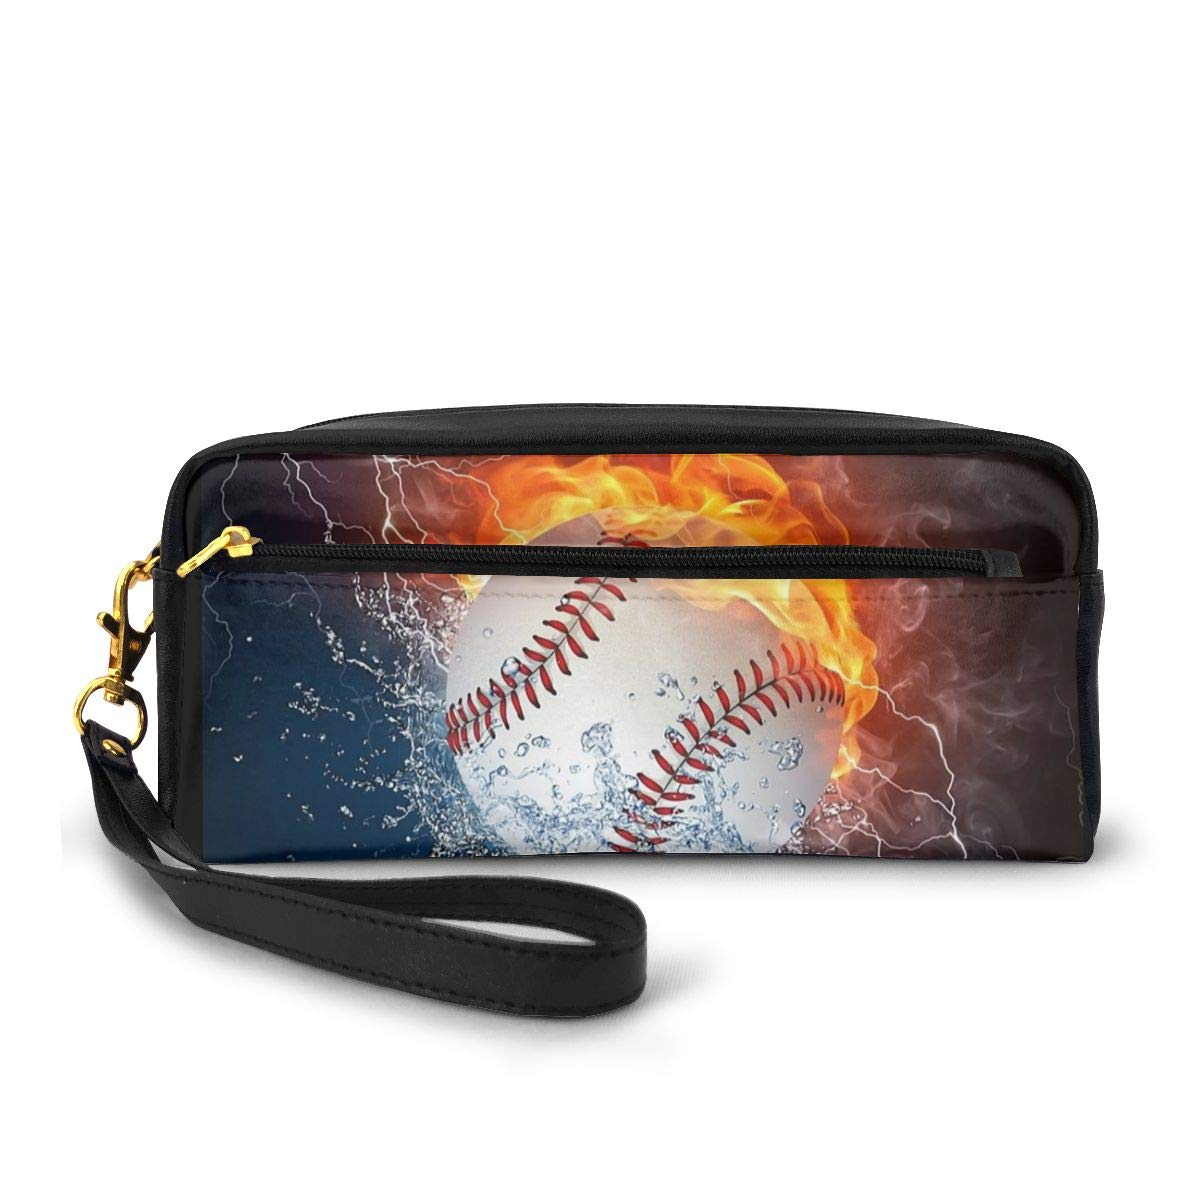 AHOOCUSTOM Baseball Fire Leather Makeup Bag for Women, Toiletry Pouch Girls Cosmetic Organizer Pencil Case for Boys